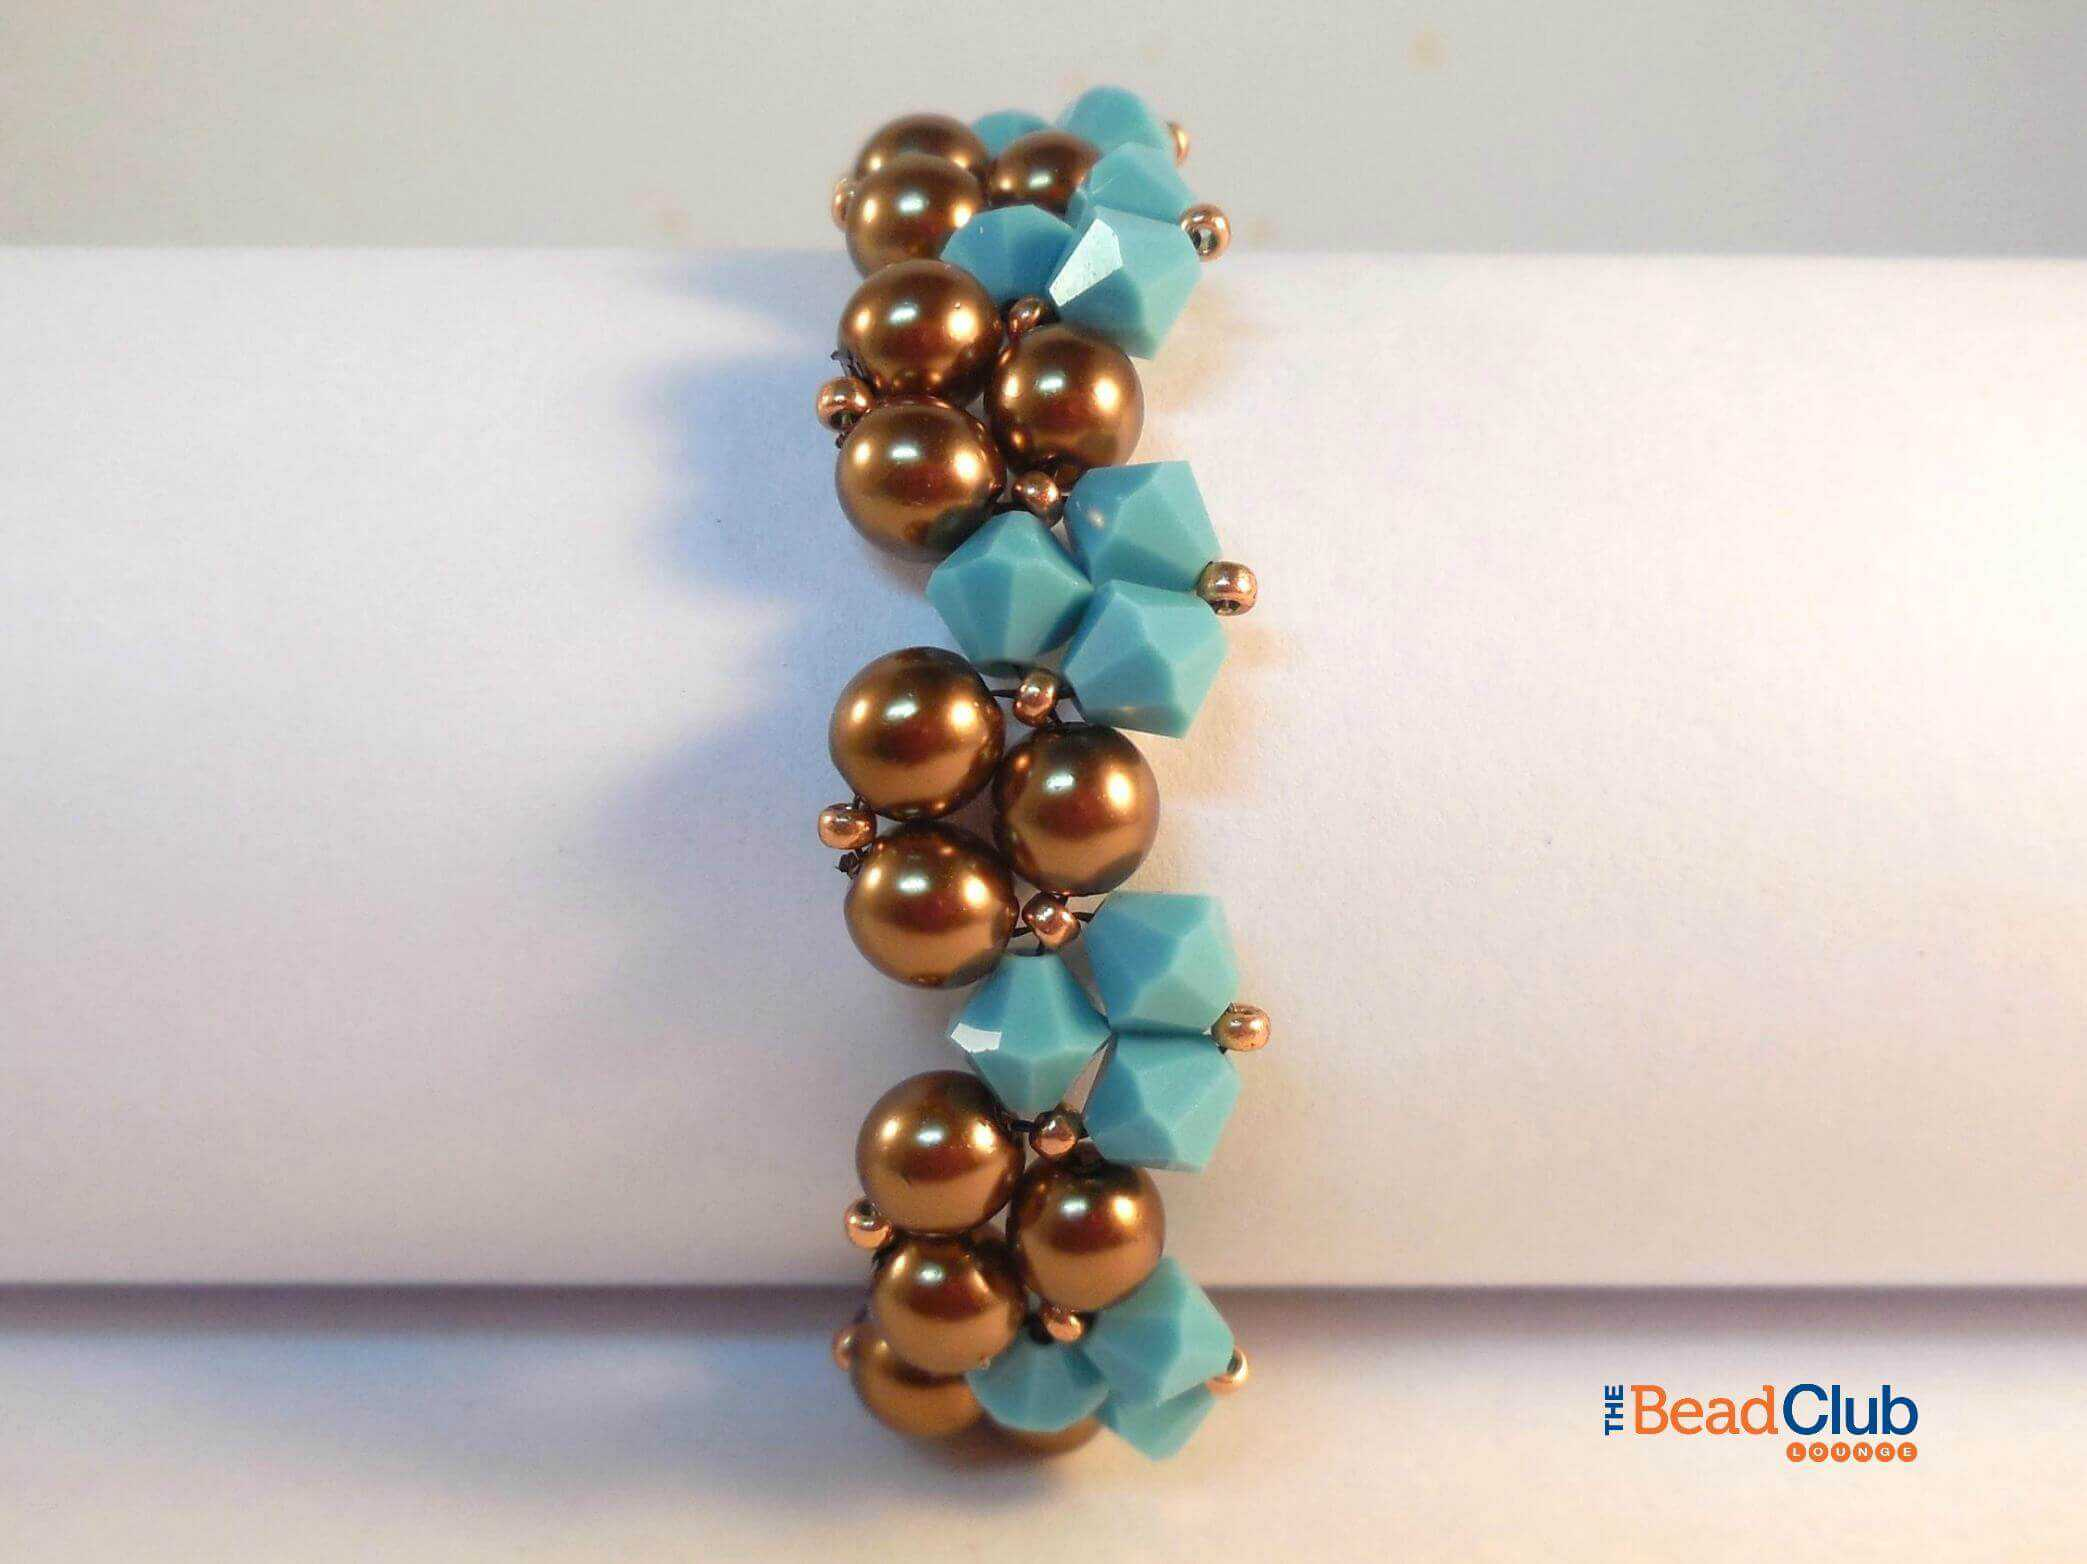 Download the Twisty Bracelet Right Angle Weave Beading tutorial.